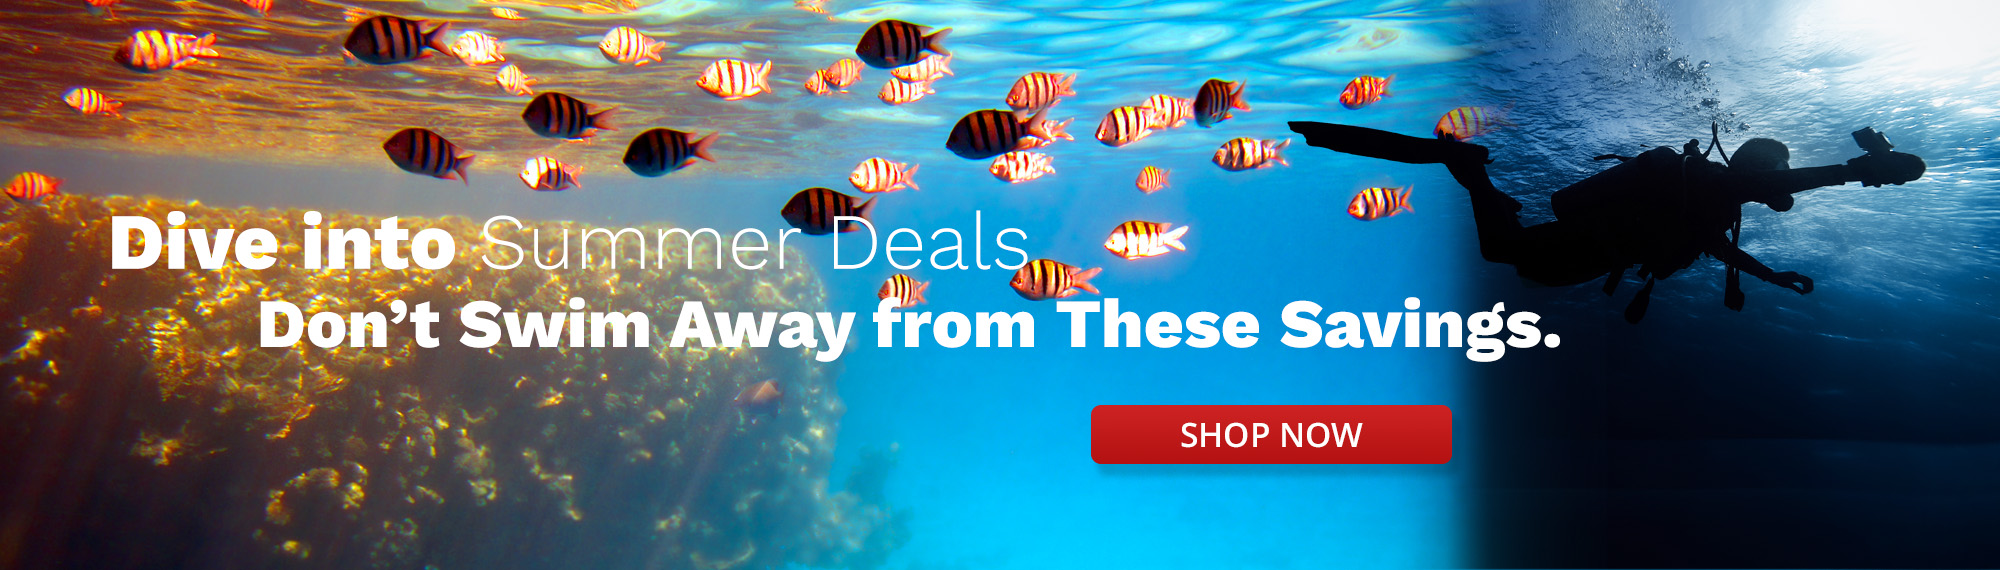 Dive into Summer Deals Don't Swim Away from These Savings in White Text Over Blue Water Image of Yellow Fish and Diver Swimming Towards the Left